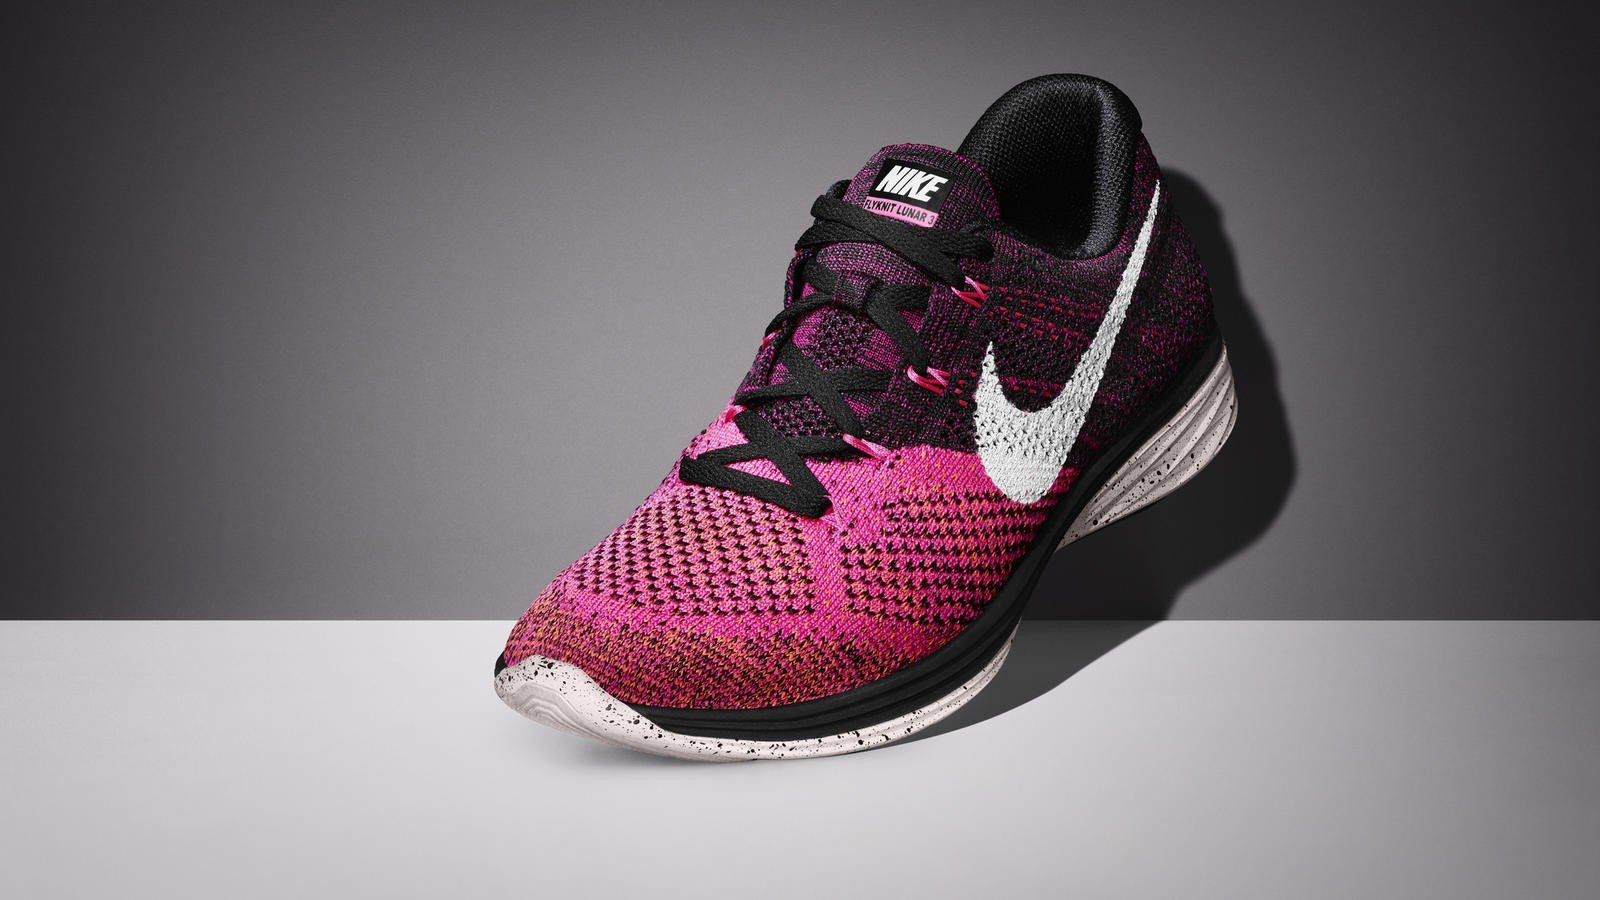 061b6b94490 Nike Flyknit Lunar 3 Review - Is It Nikes Best Fit Shoe  - The Athletic Foot